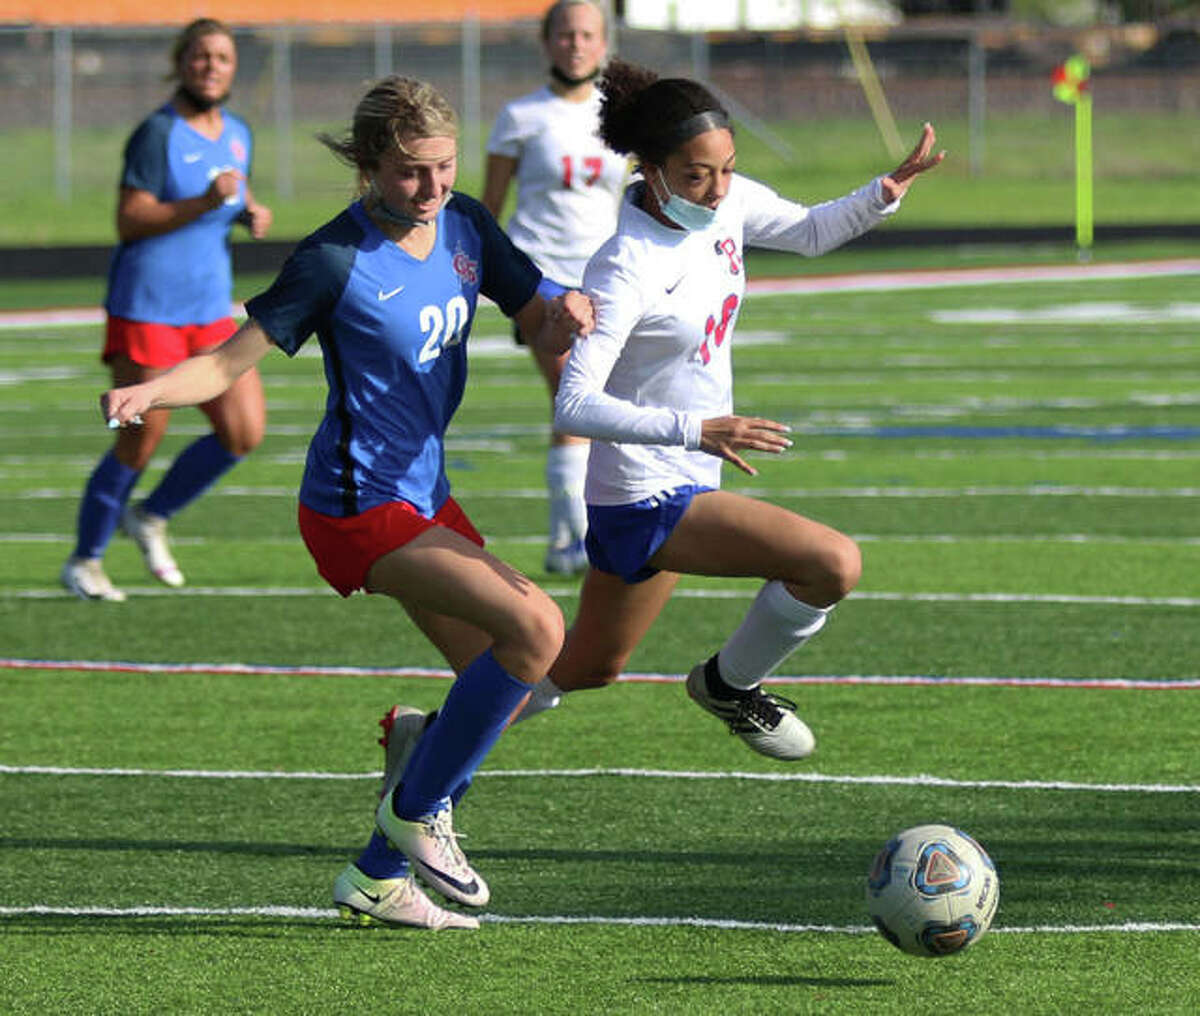 Roxana's Jada Covington (right) competes with Carlinville's Jill Stayton for ball during an April 29 match in Carlinville. On Saturday in Belleville, Covington scored a goal to help the Shells stay unbeaten with a 3-0 win over Highland in the Metro Cup.